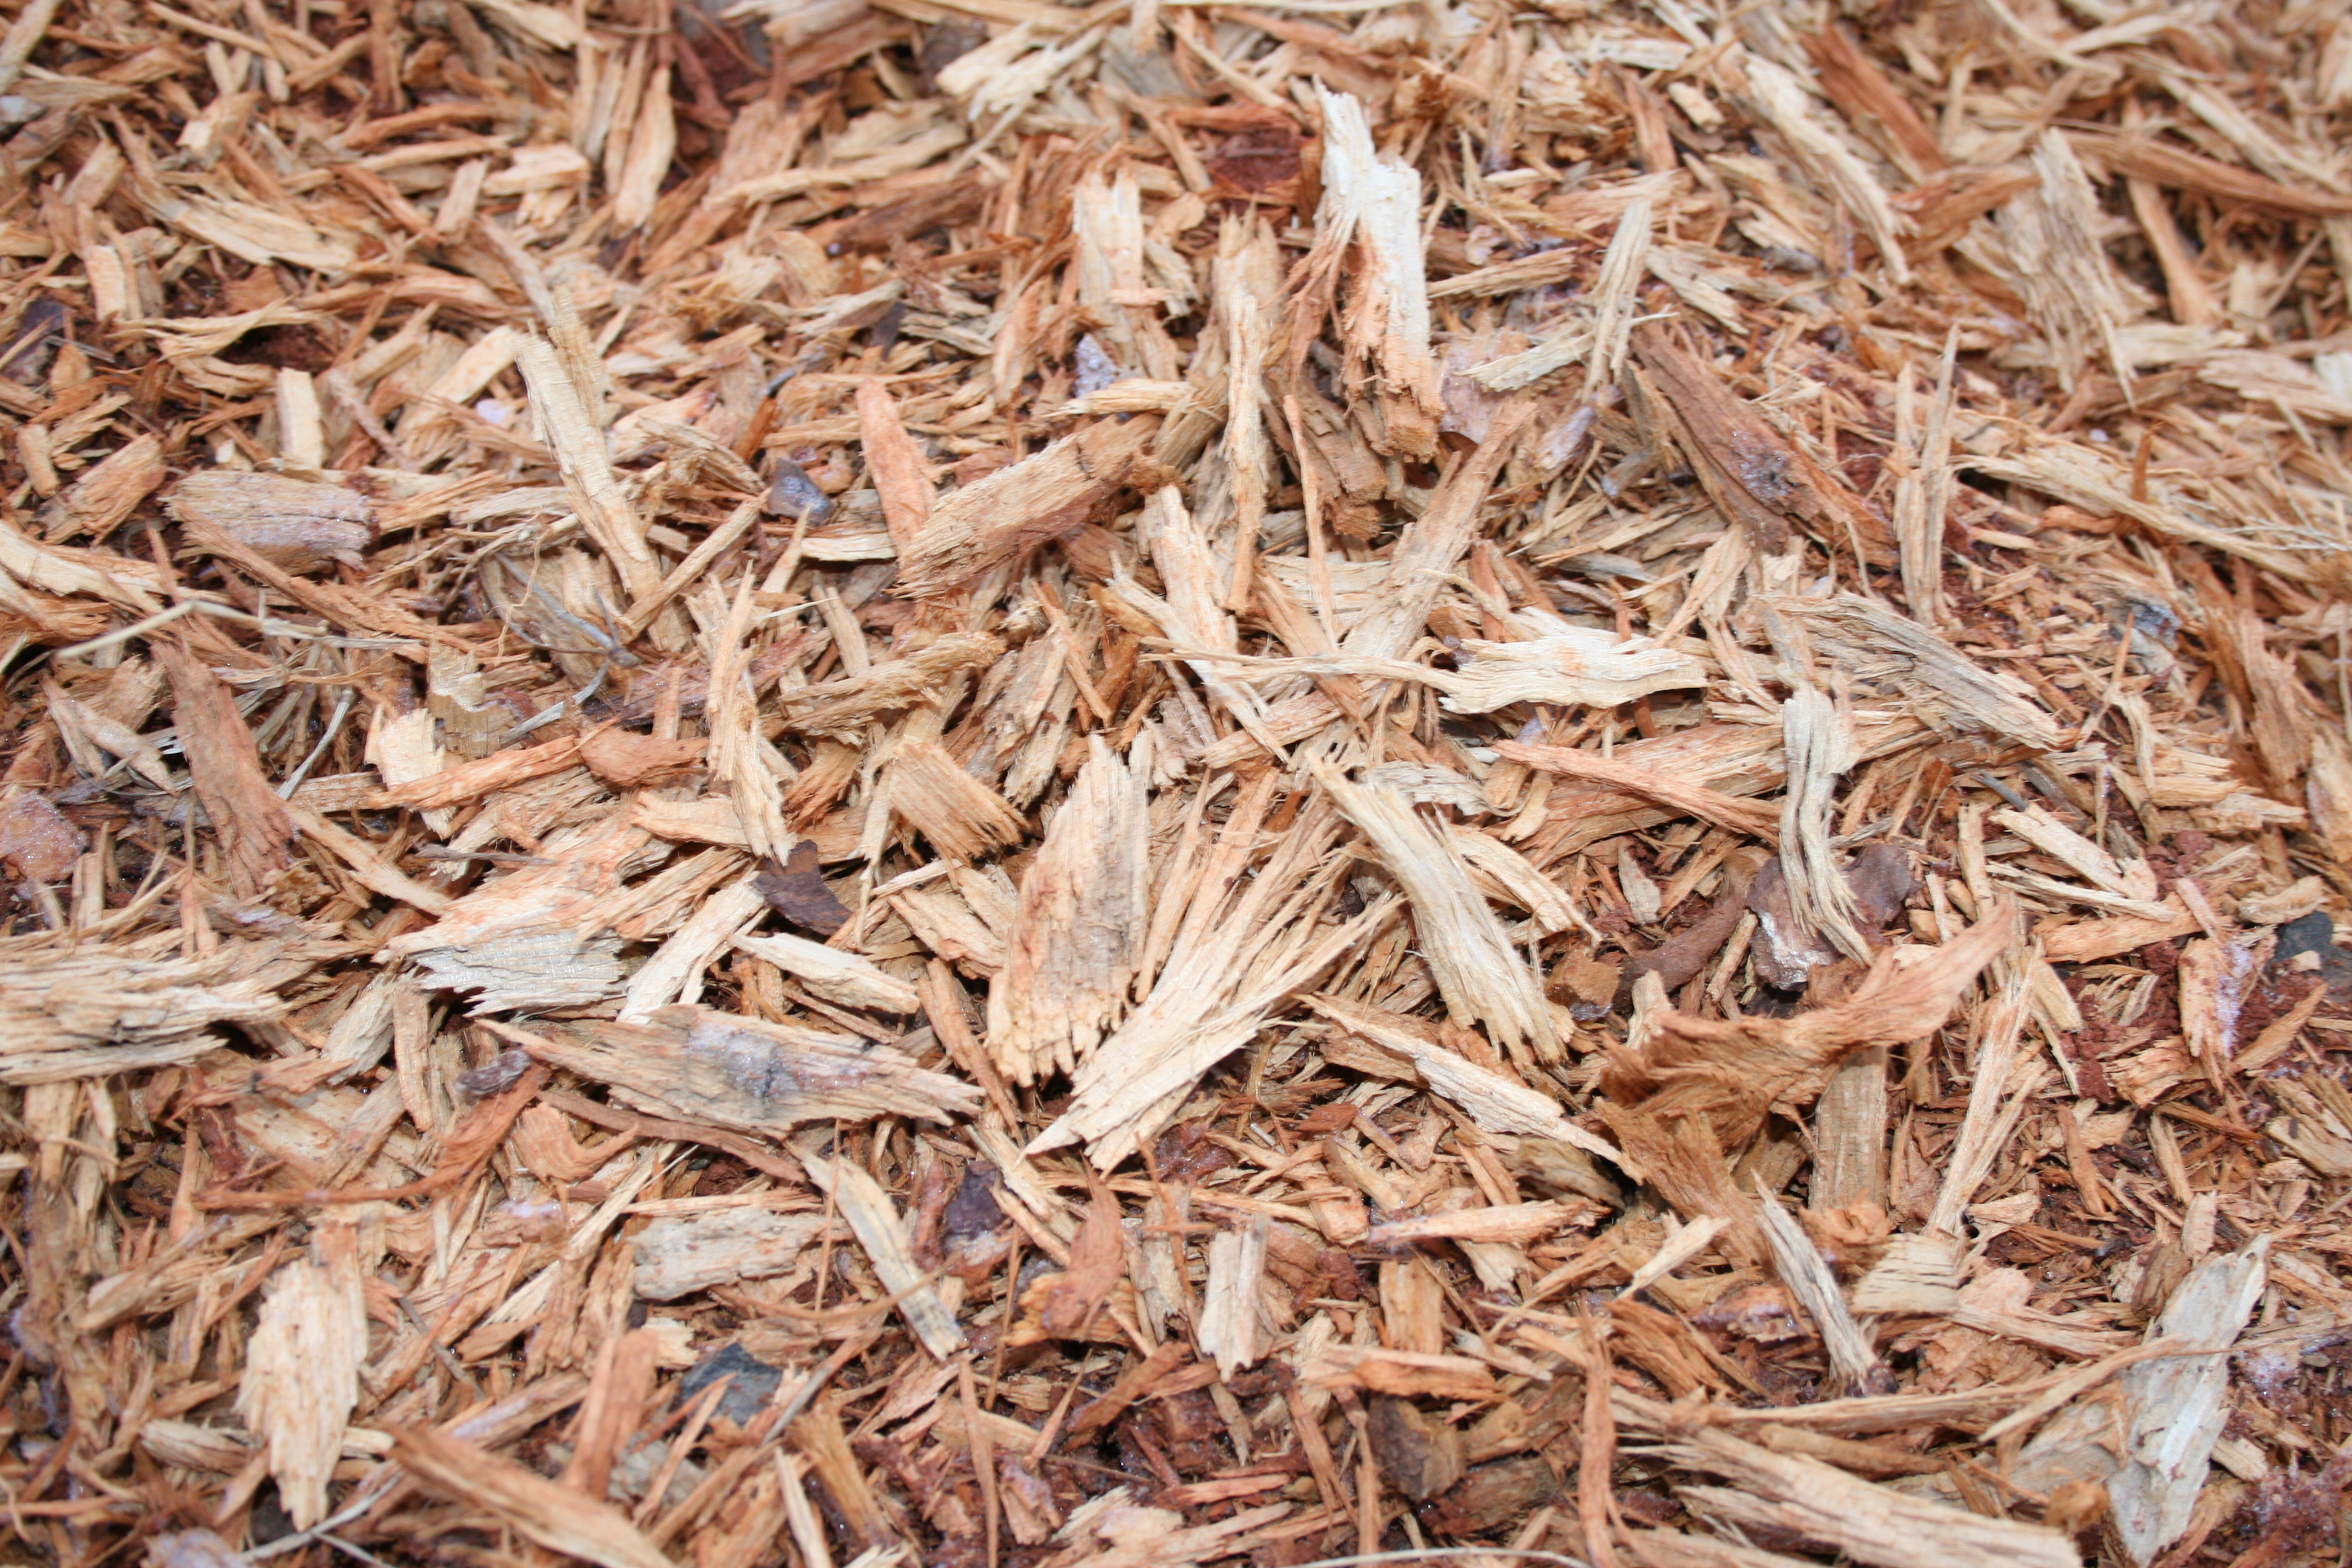 Fresh woodchips are mostly carbon and will steal nitrogen from the plant's soil in their urgency to begin composting.